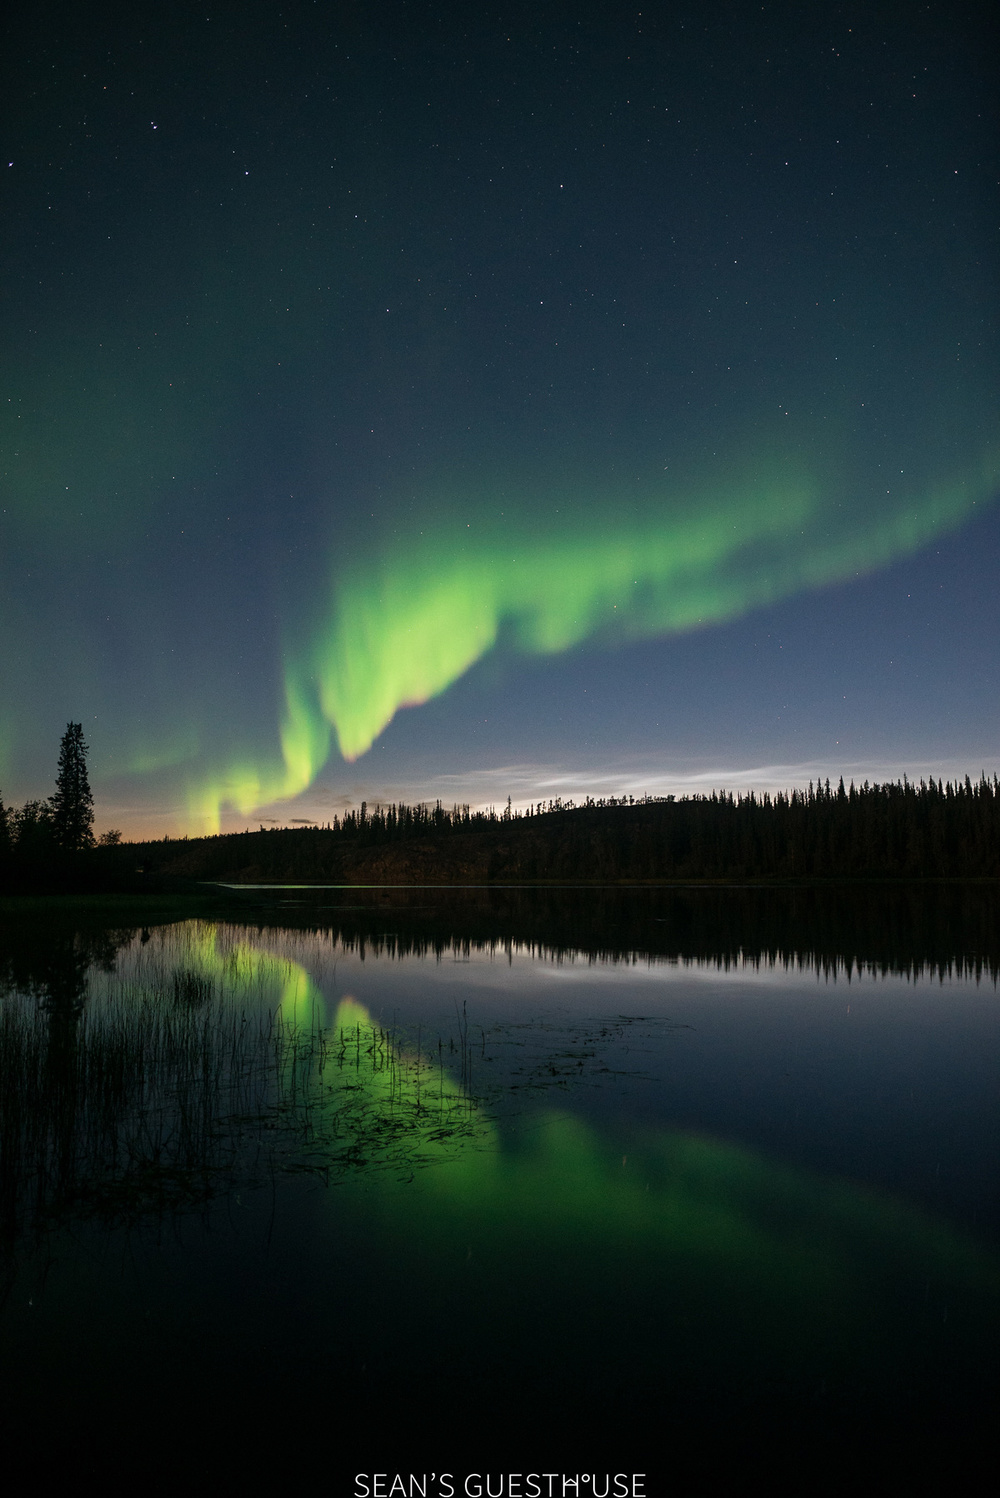 Yellowknife Northern Lights - August Aurora Borealis - Sean's Guesthouse - 8.jpg